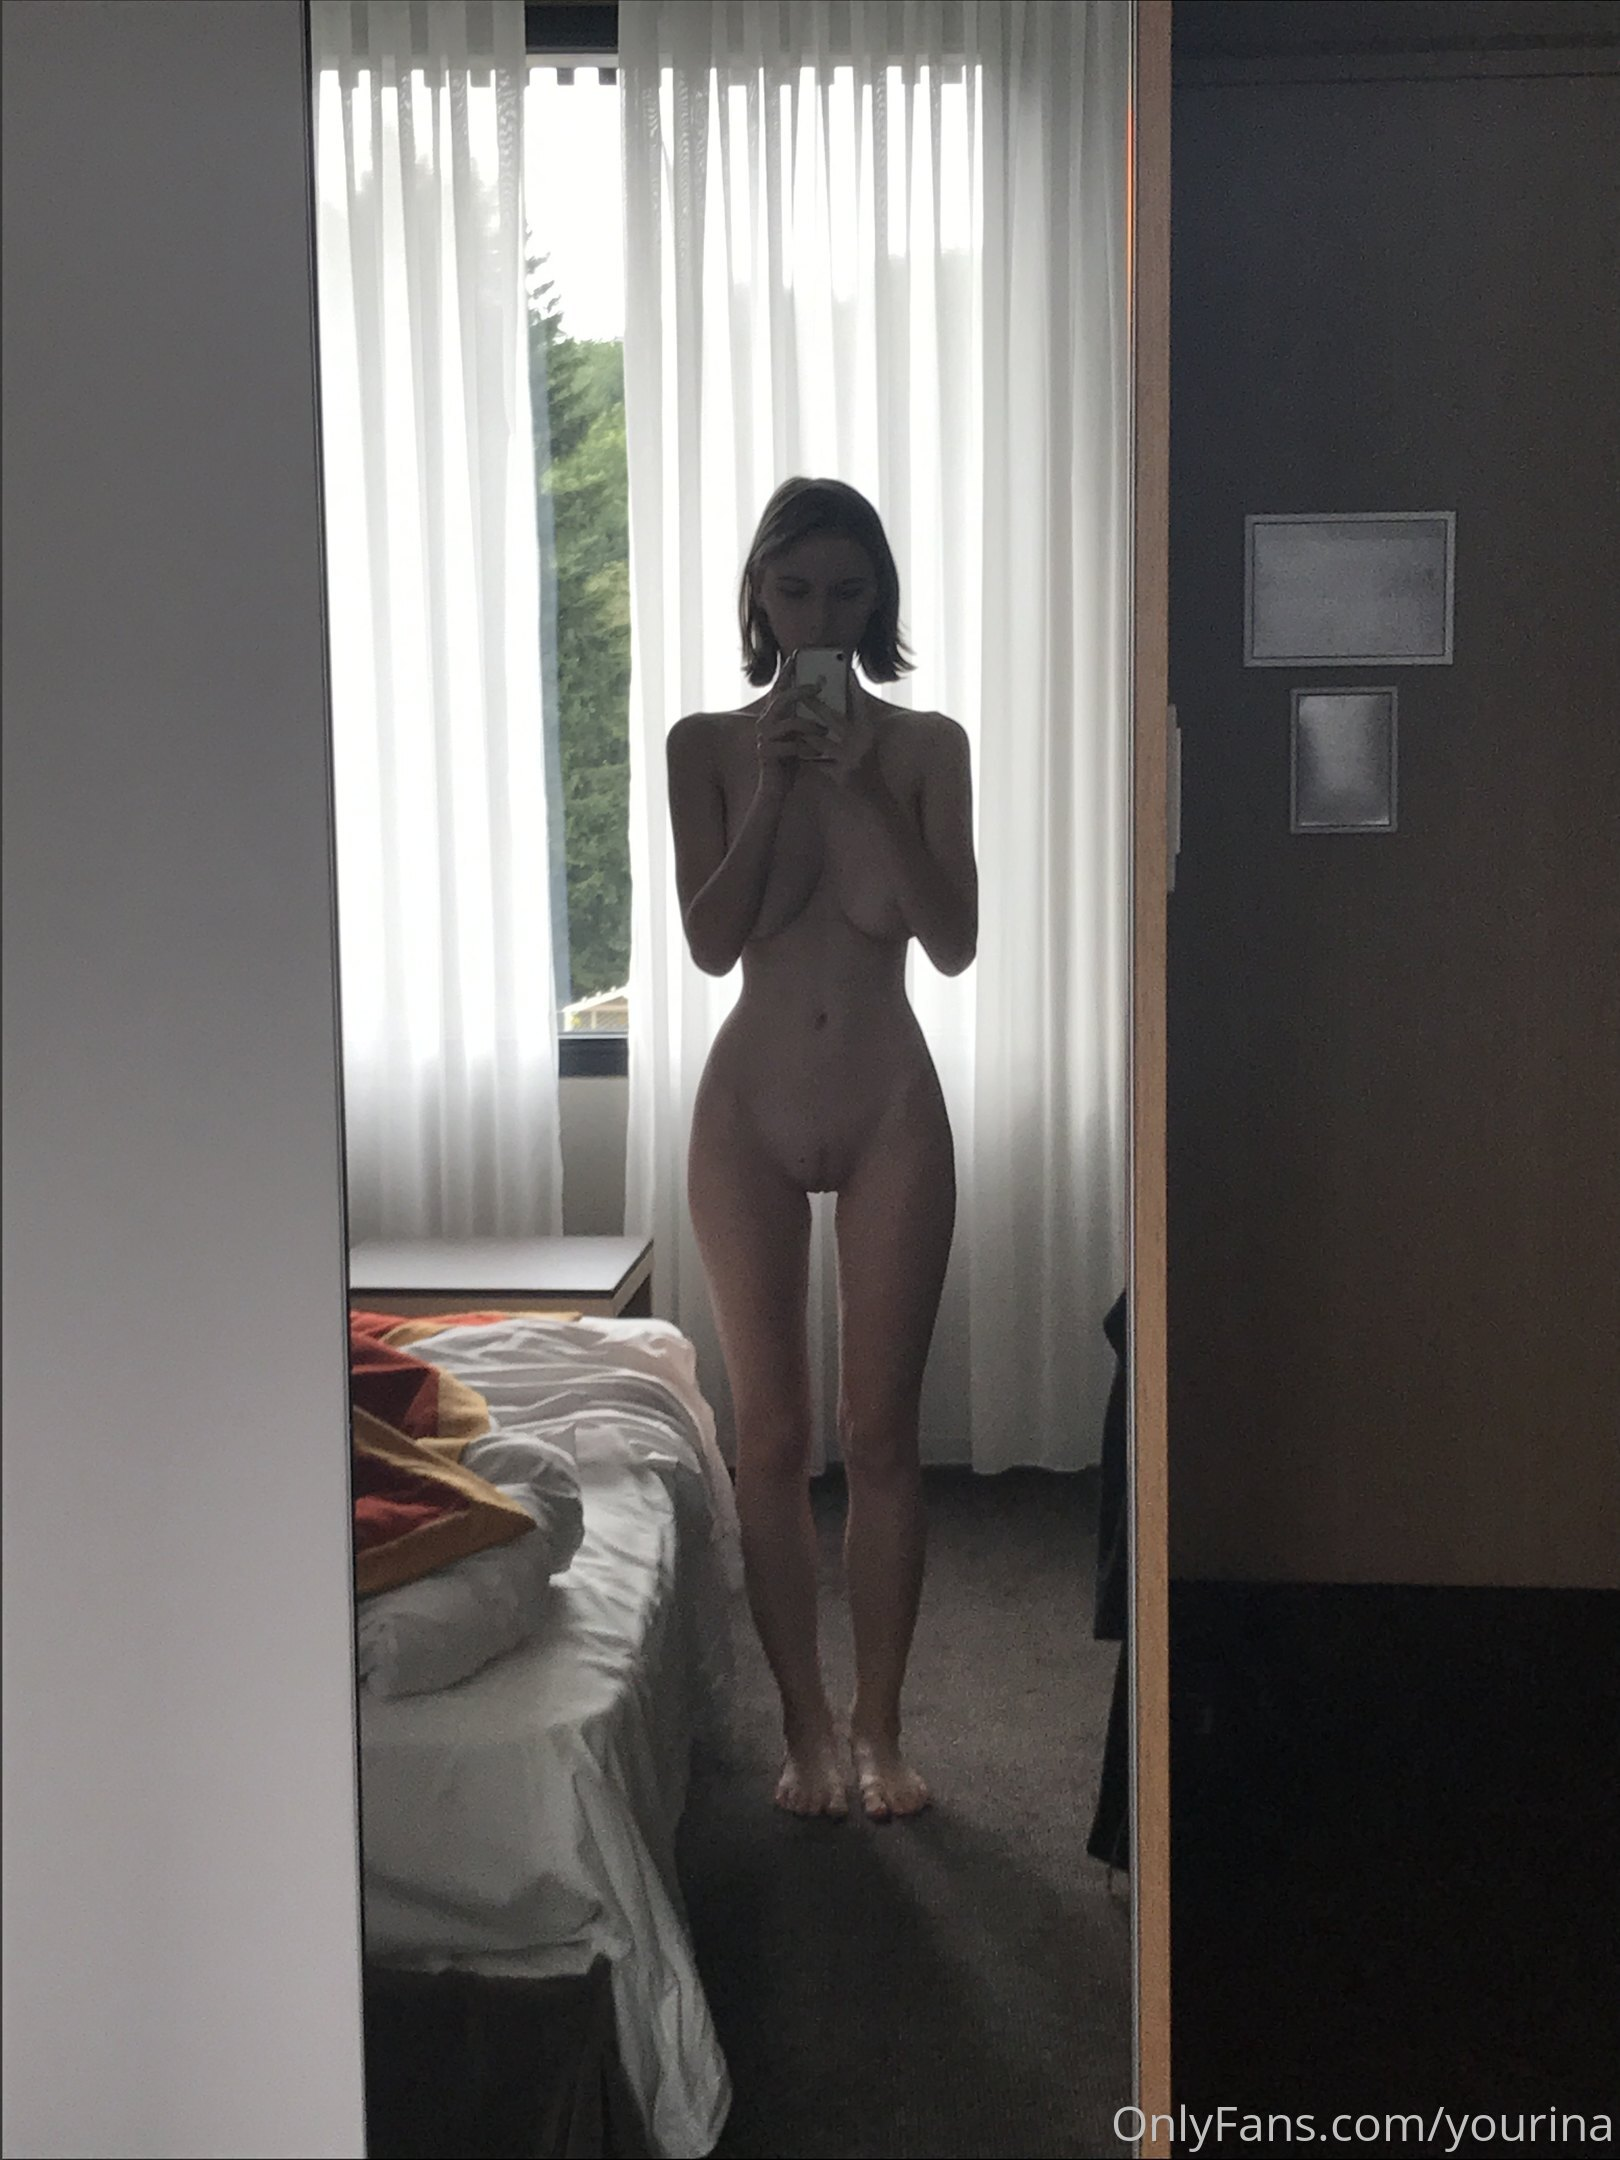 Yourina Onlyfans 0028